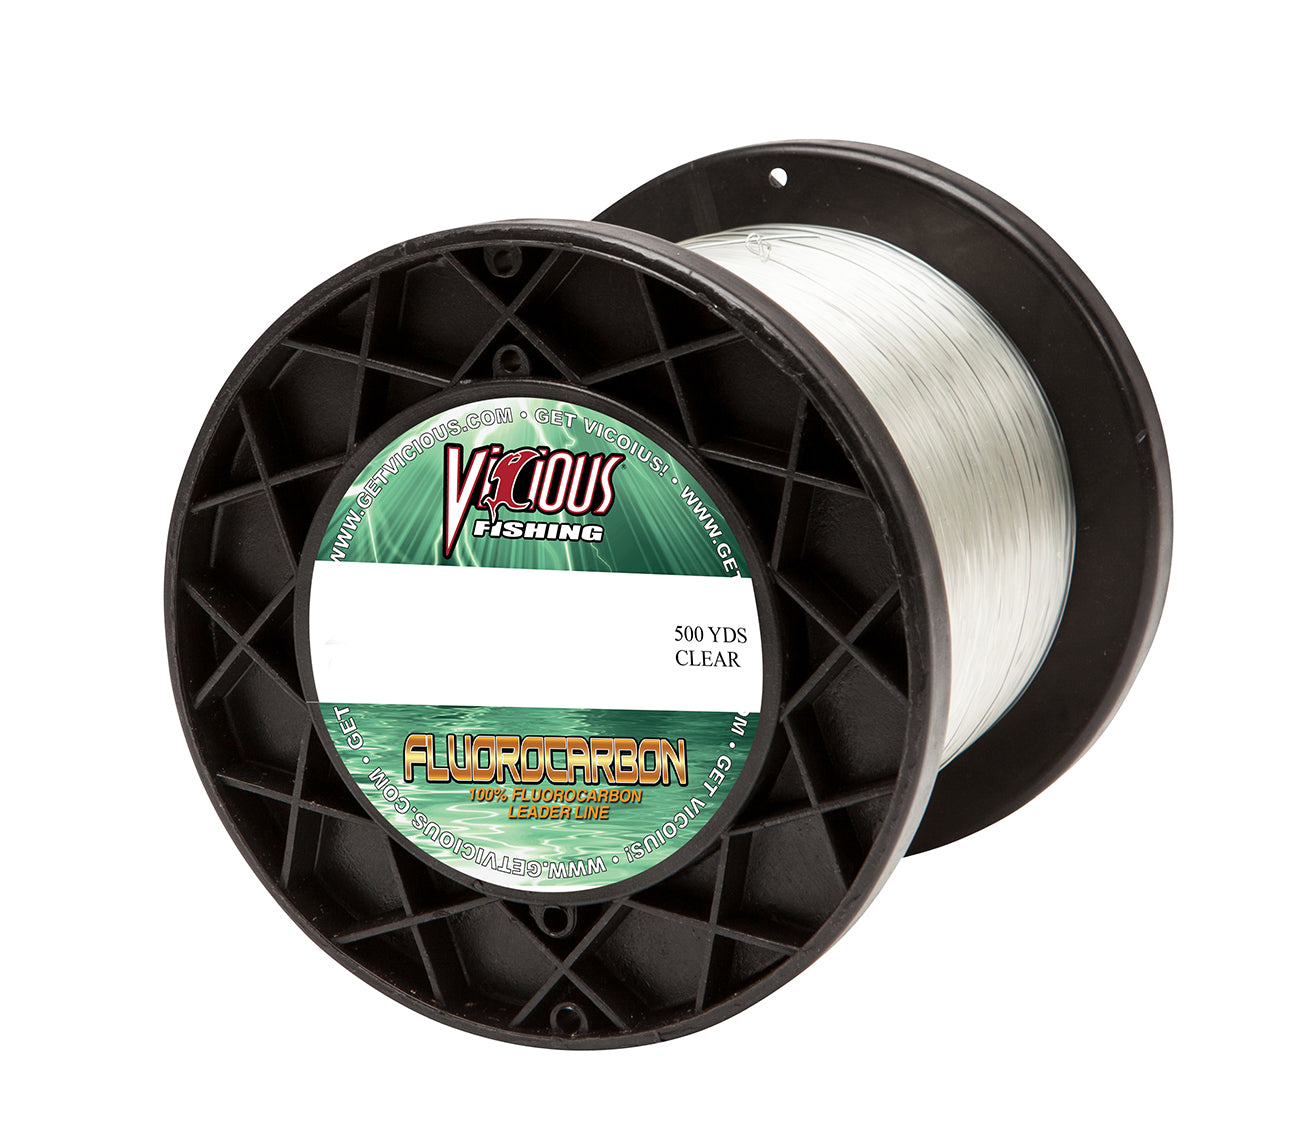 60lb Vicious Fluorocarbon Leader - 500 Yards